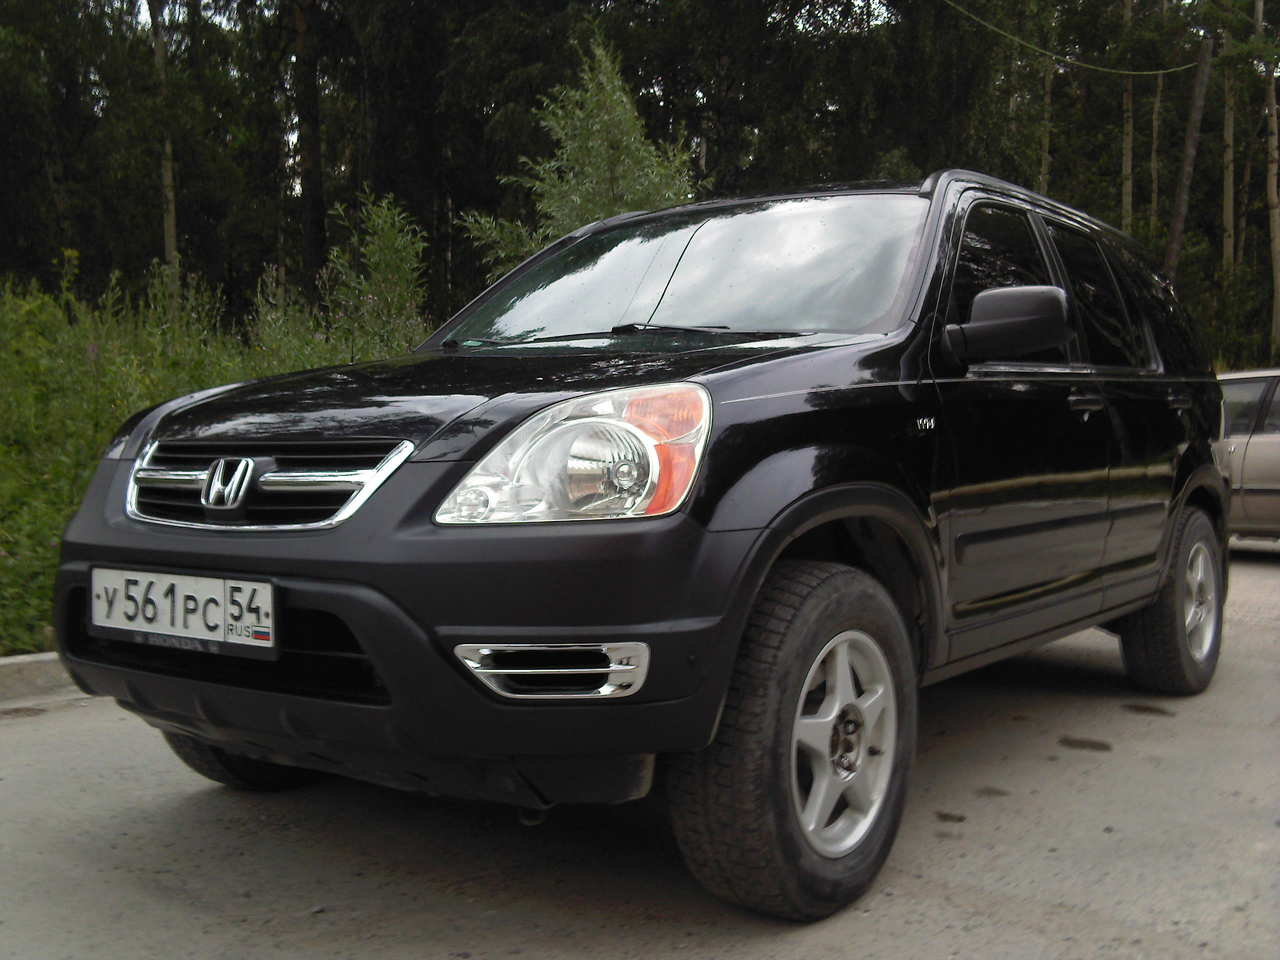 2004 honda cr v photos 2 4 gasoline automatic for sale. Black Bedroom Furniture Sets. Home Design Ideas